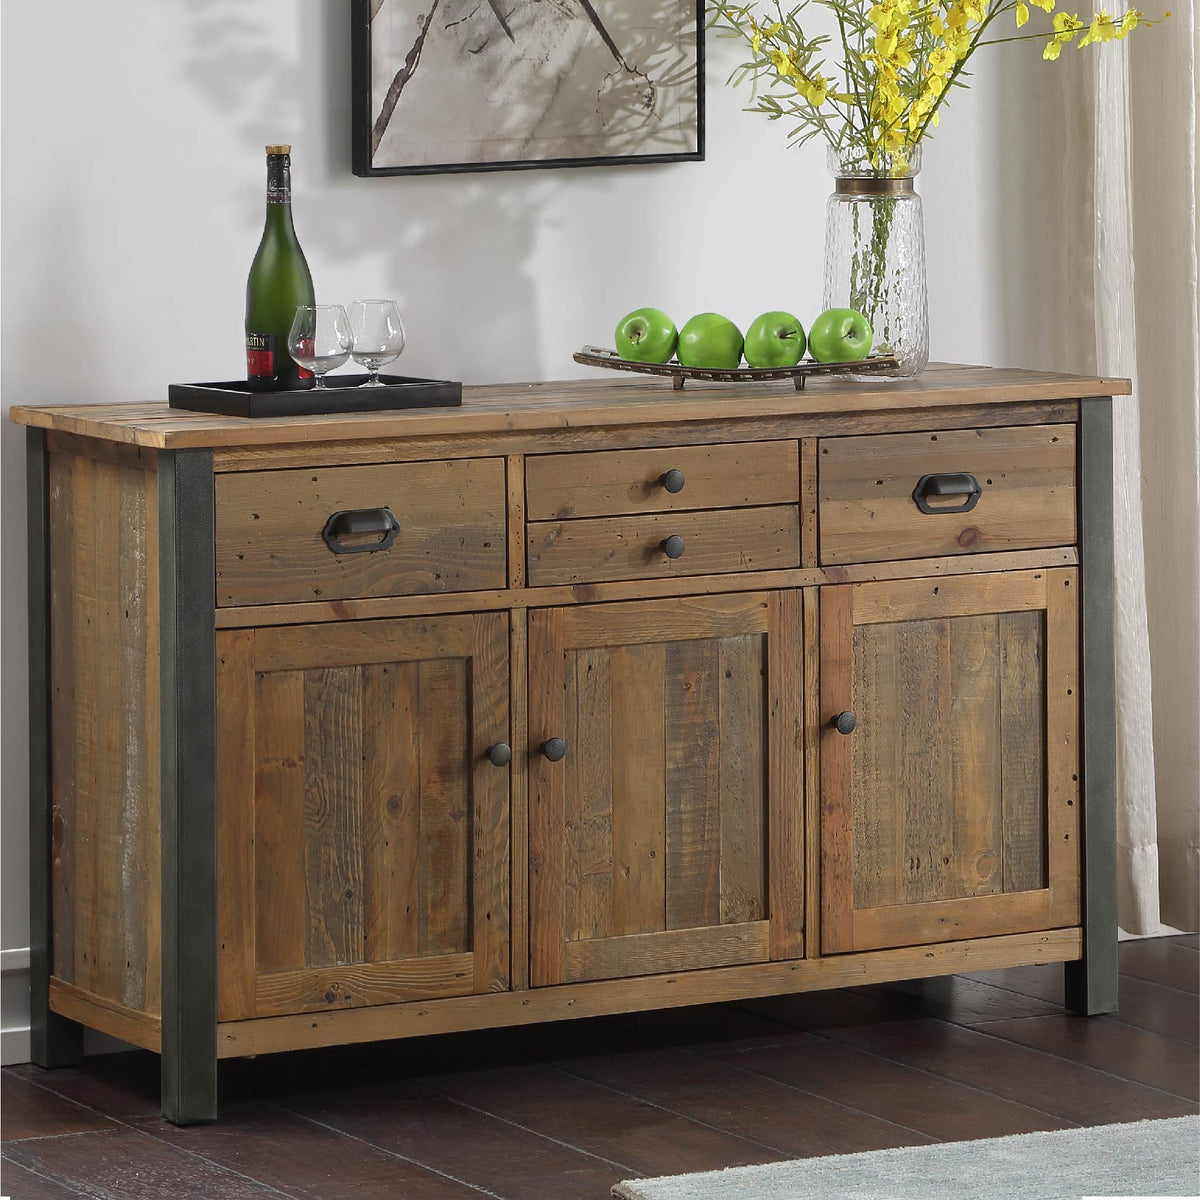 Urban Elegance Reclaimed Wood Large 3 Door Sideboard